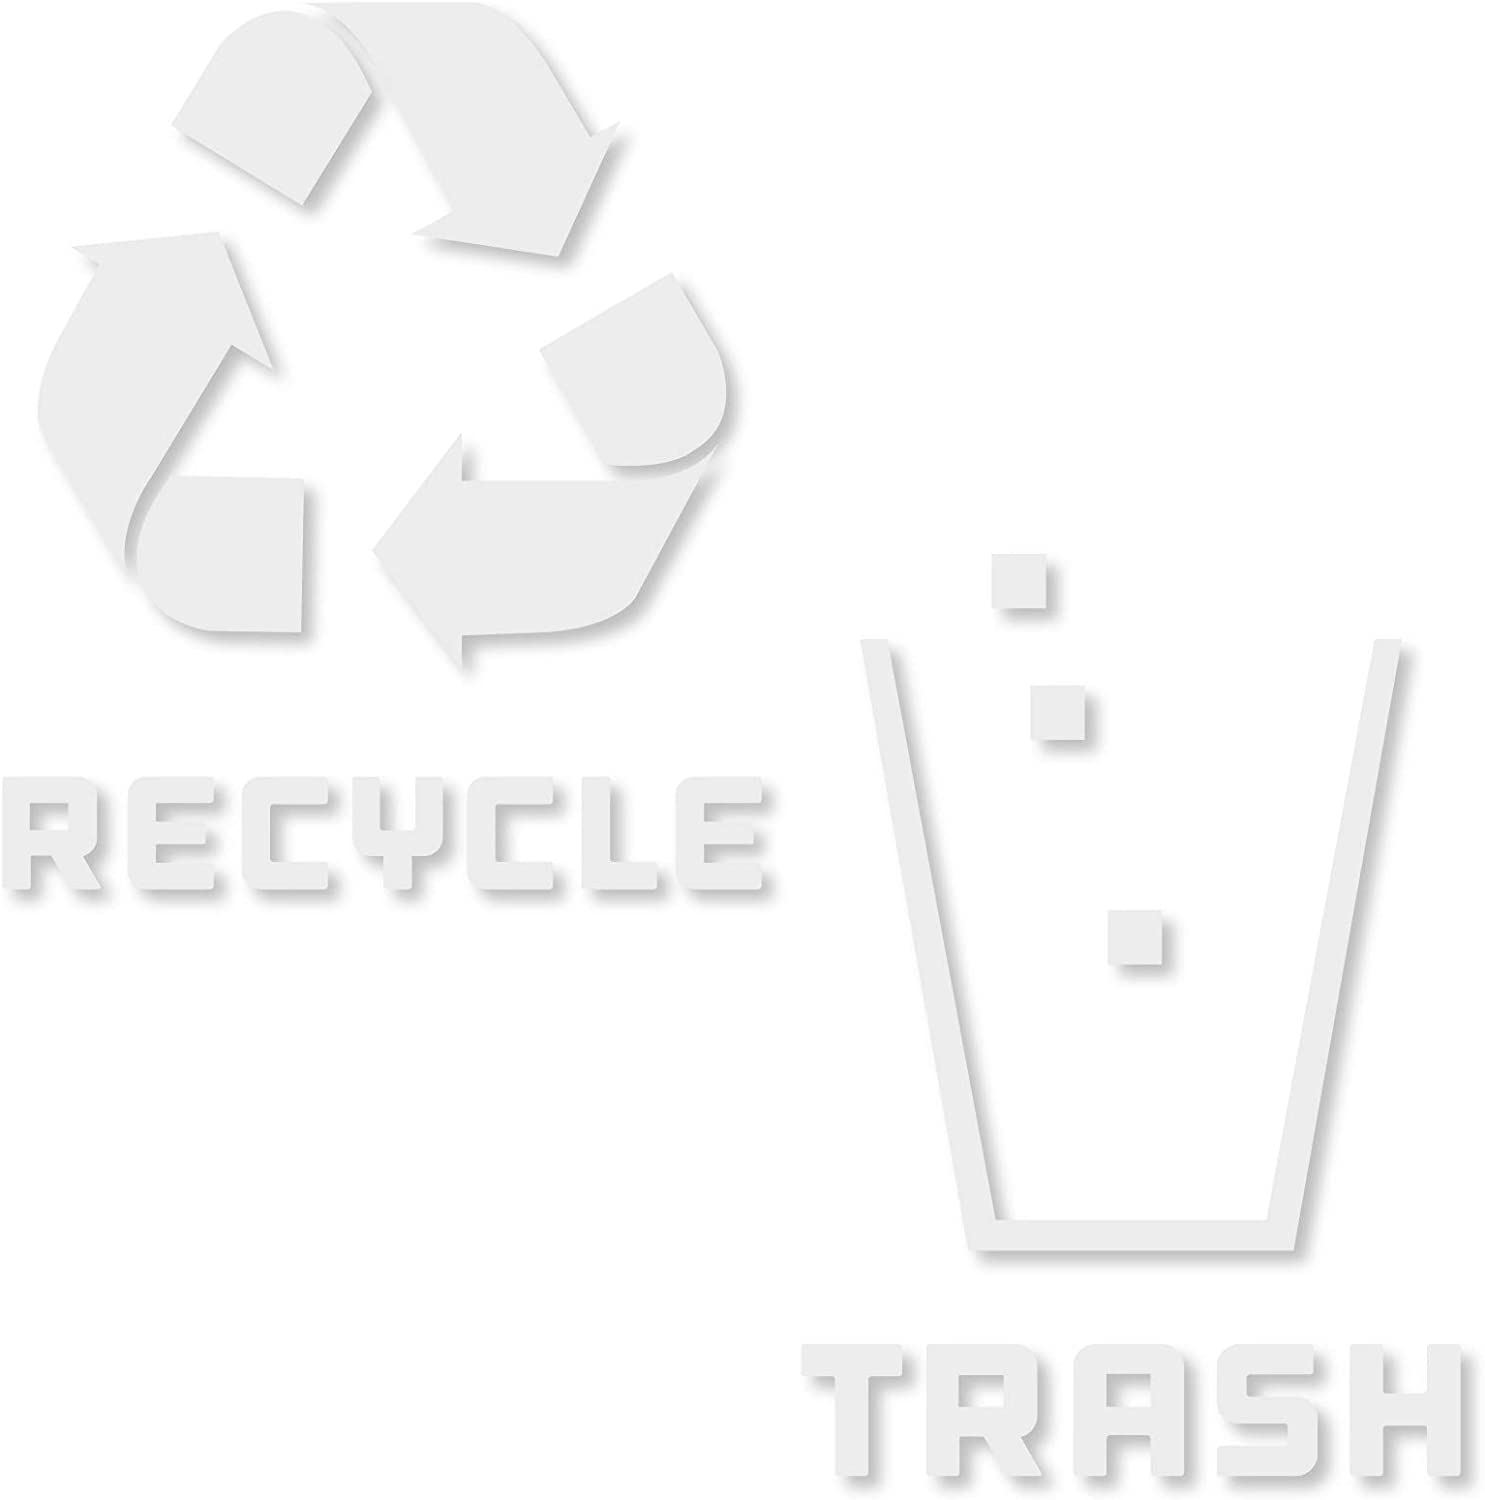 Recycle and Trash Stickers Modern Logo (1 ea) Symbol to Organize Trash cans or Garbage containers and Walls - Vinyl Decal Sticker (XSmall - 2.75x2.75, Reversed - White)